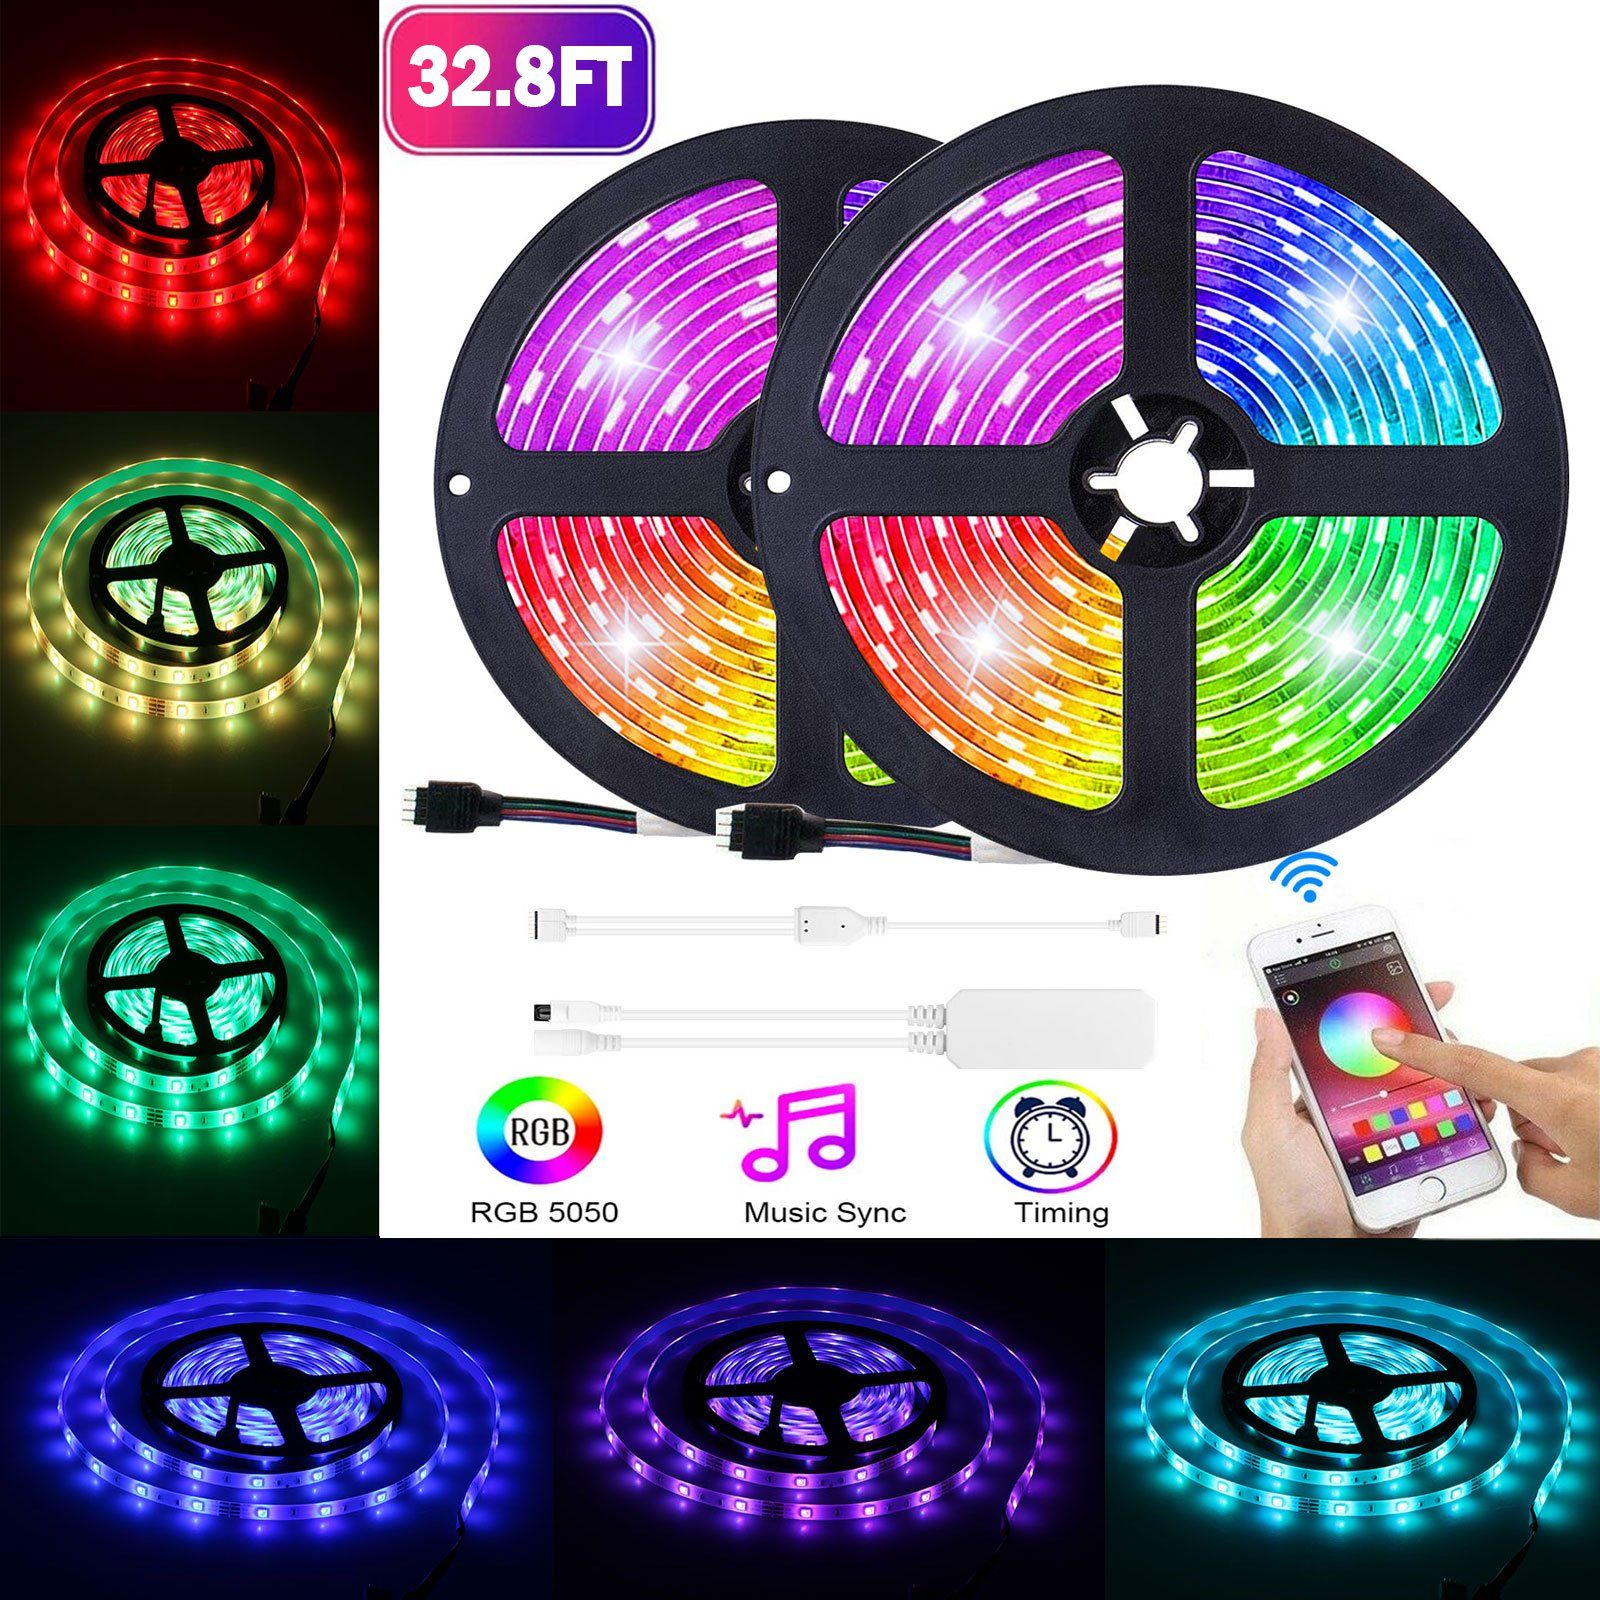 Eeekit Rgb Led Light Strip 16 4ft 5050 Smd Led Waterproof Smart Wifi Strip Light Kit Working With Android And Ios System Walmart Com In 2020 Strip Lighting Rgb Led Lights Led Light Strips